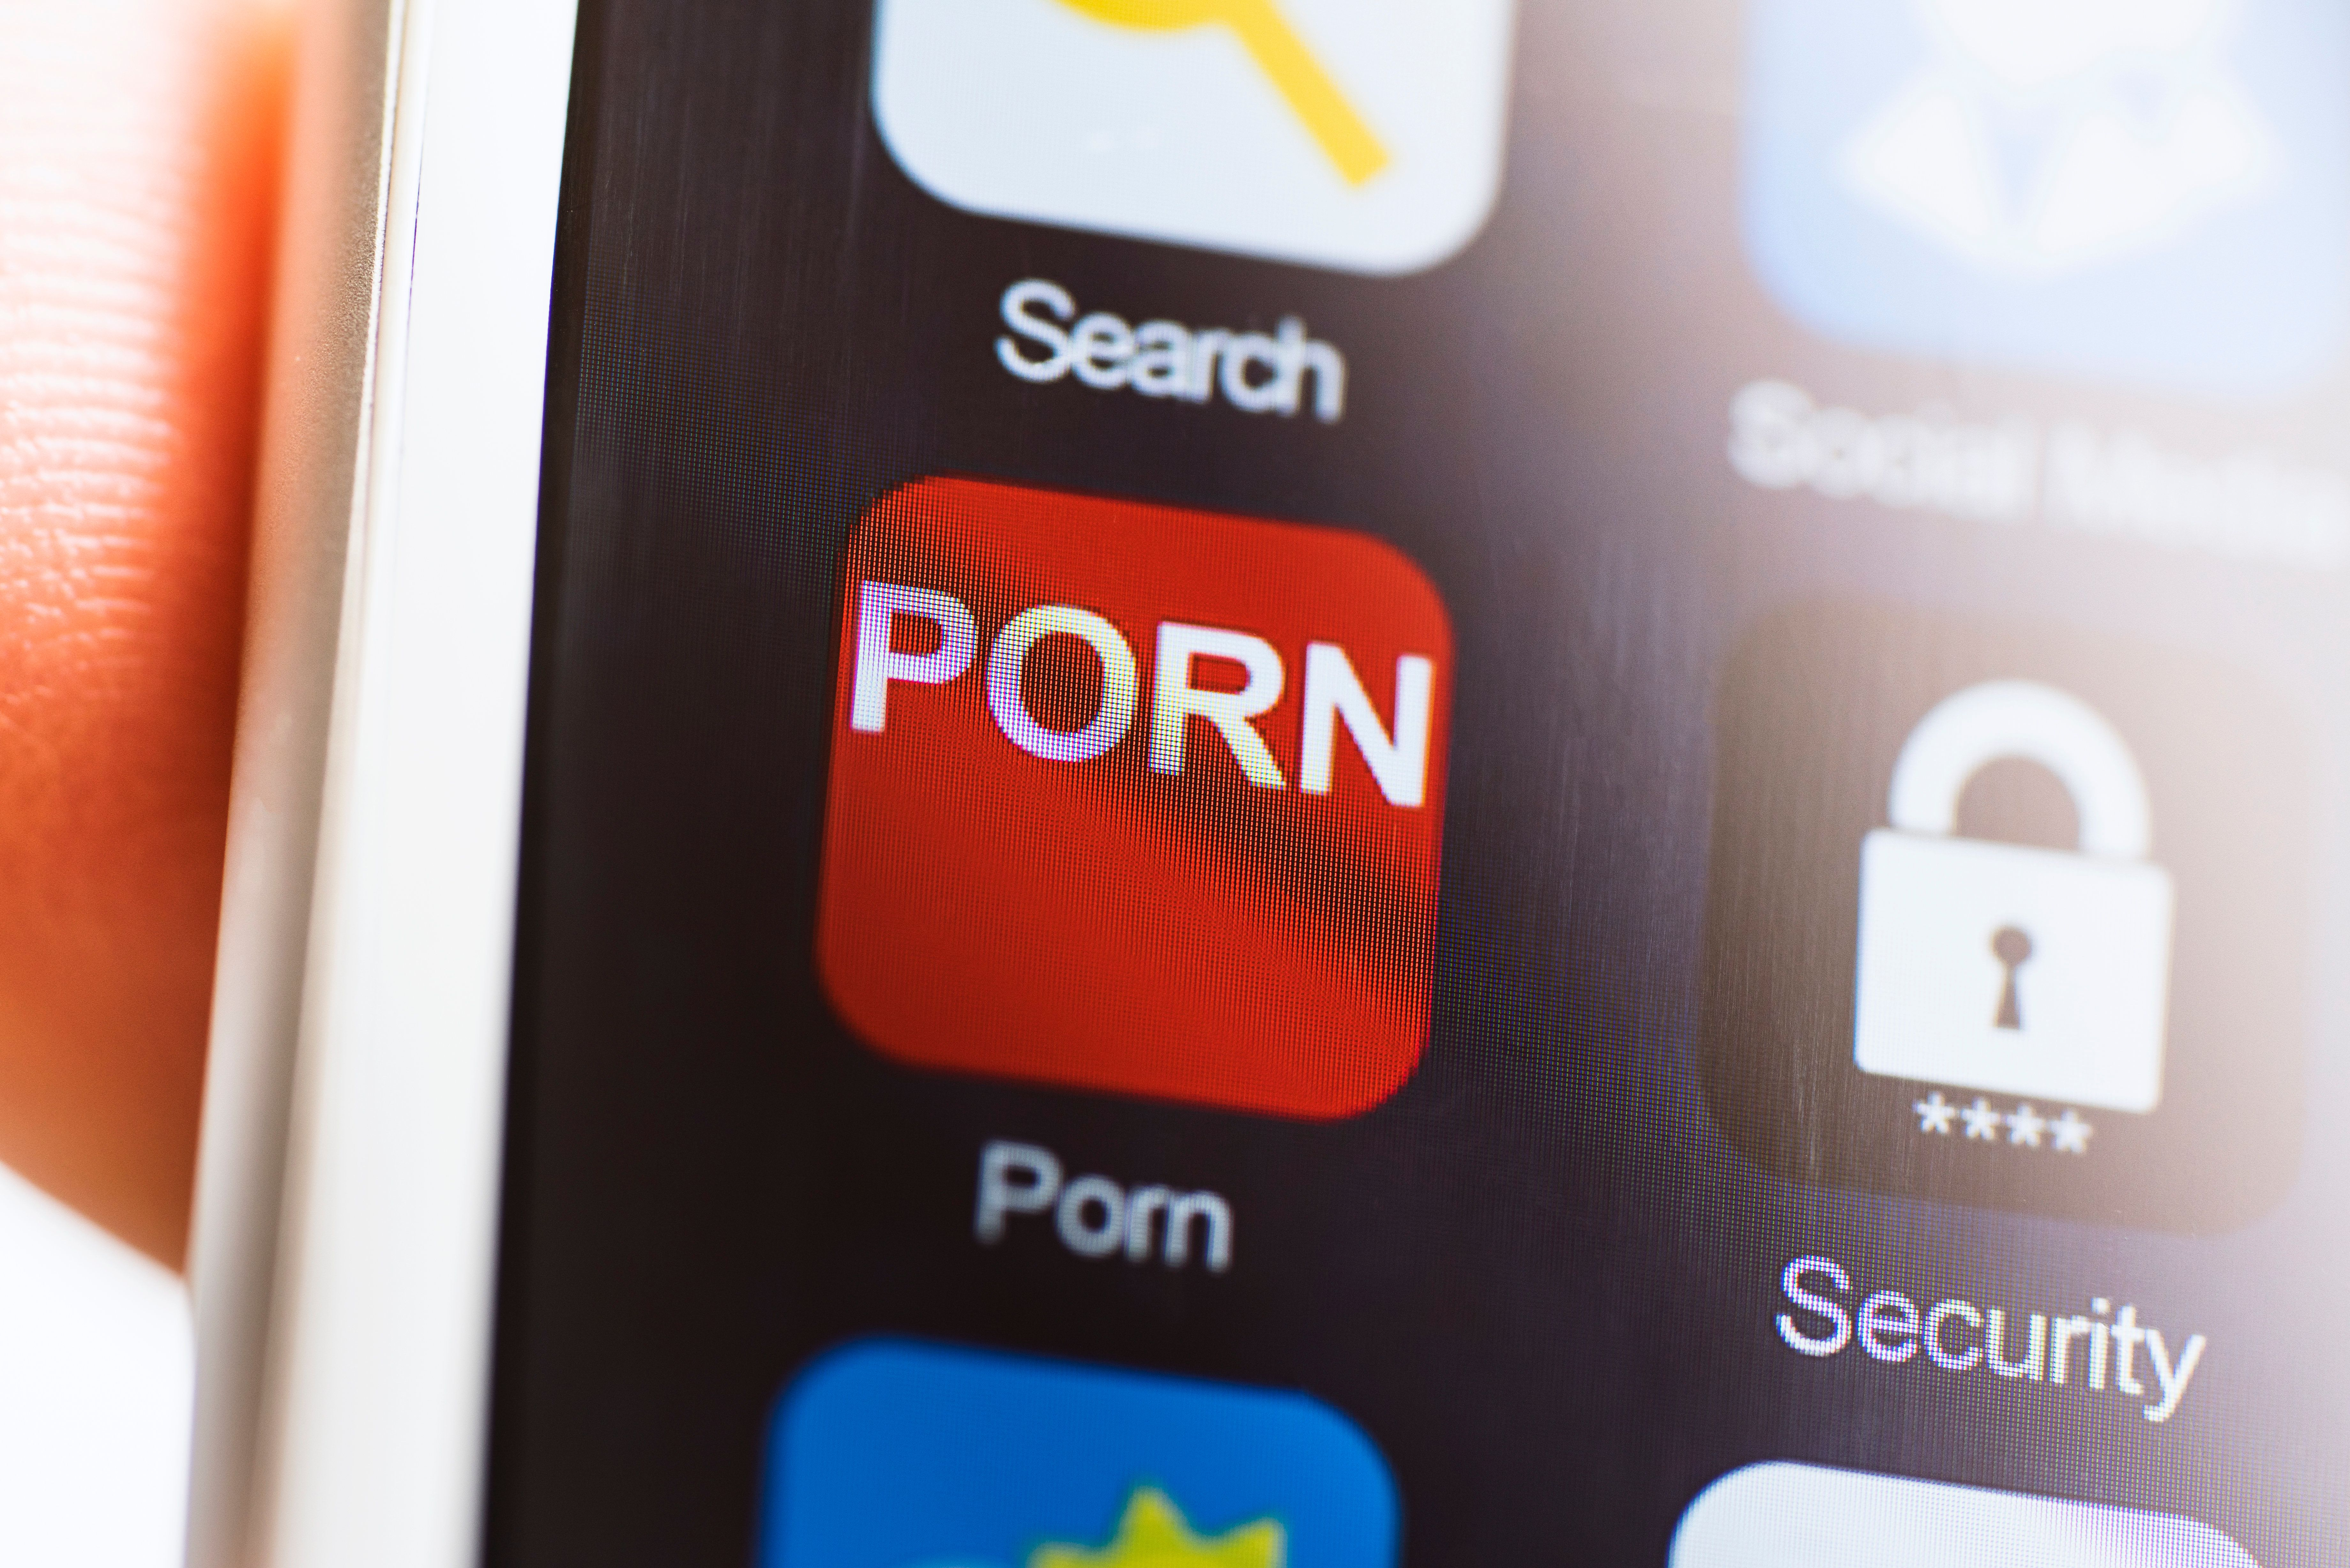 Hand holding phone, porn application icon on touchscreen.